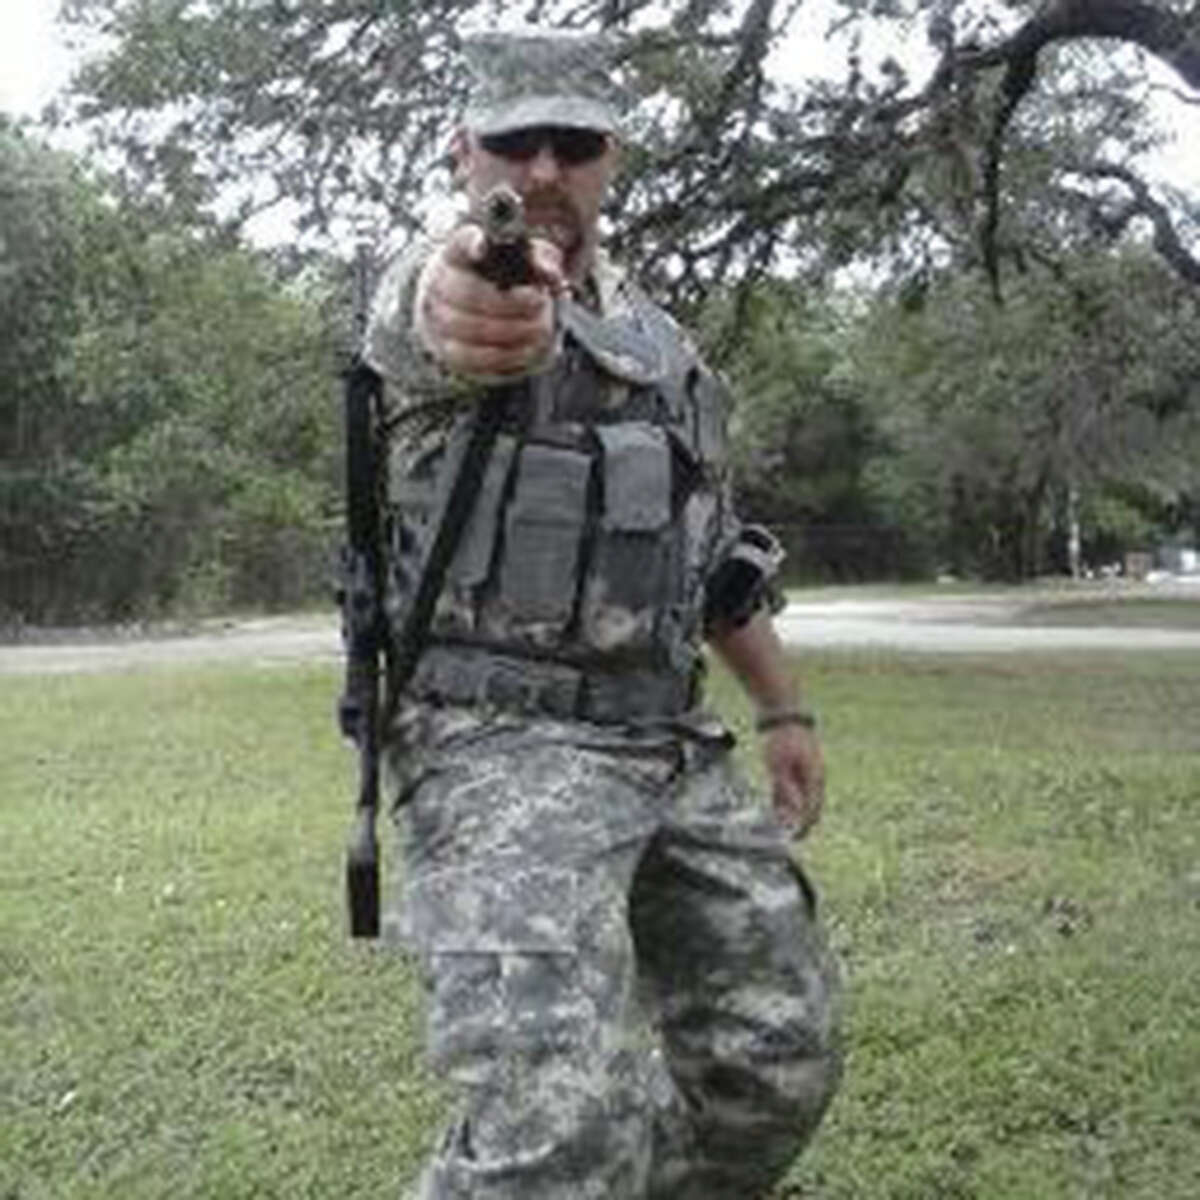 Chris Davis, a 37-year-old truck driver who was discharged from the Army in lieu of court martial, is leading a citizen militia of